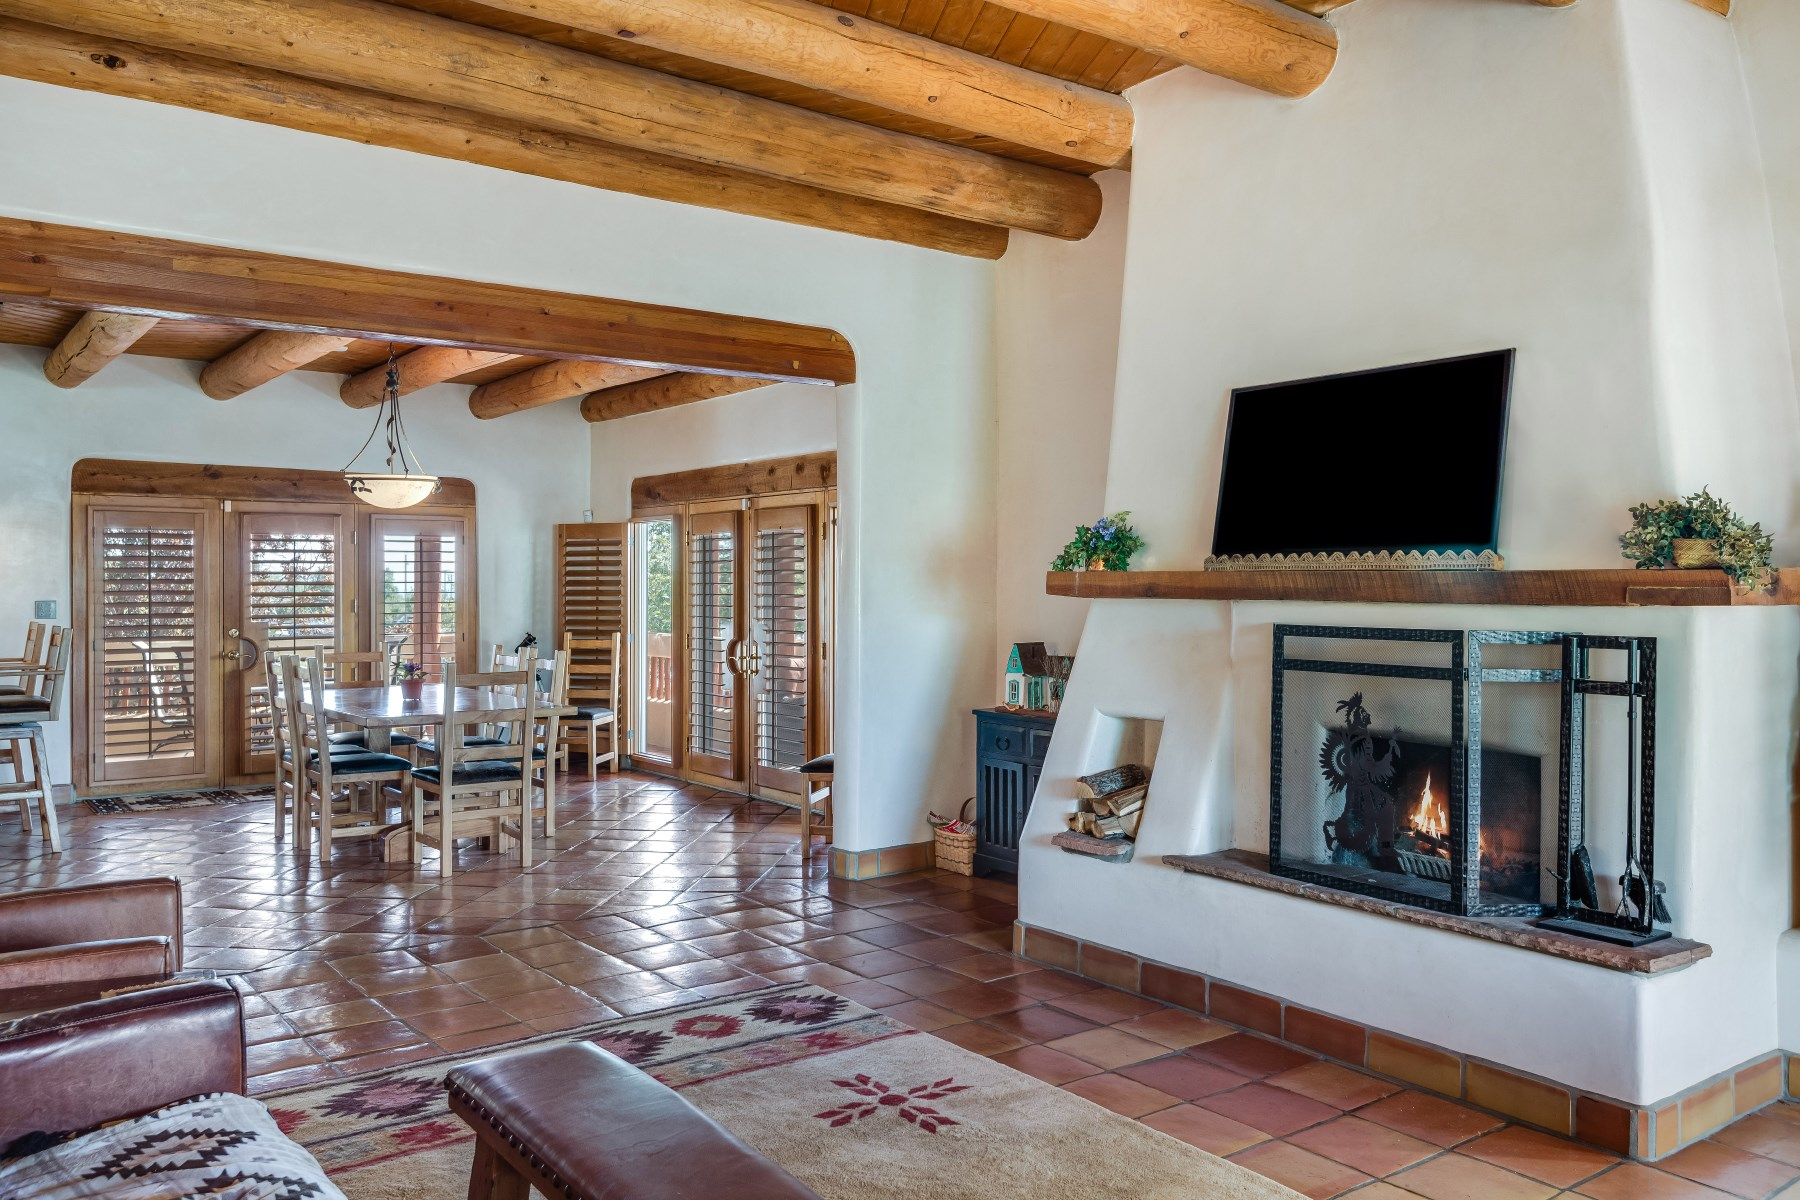 Single Family Home for Sale at Desirable Museum Hill neighborhood 504 Barcelona Santa Fe, New Mexico, 87505 United States